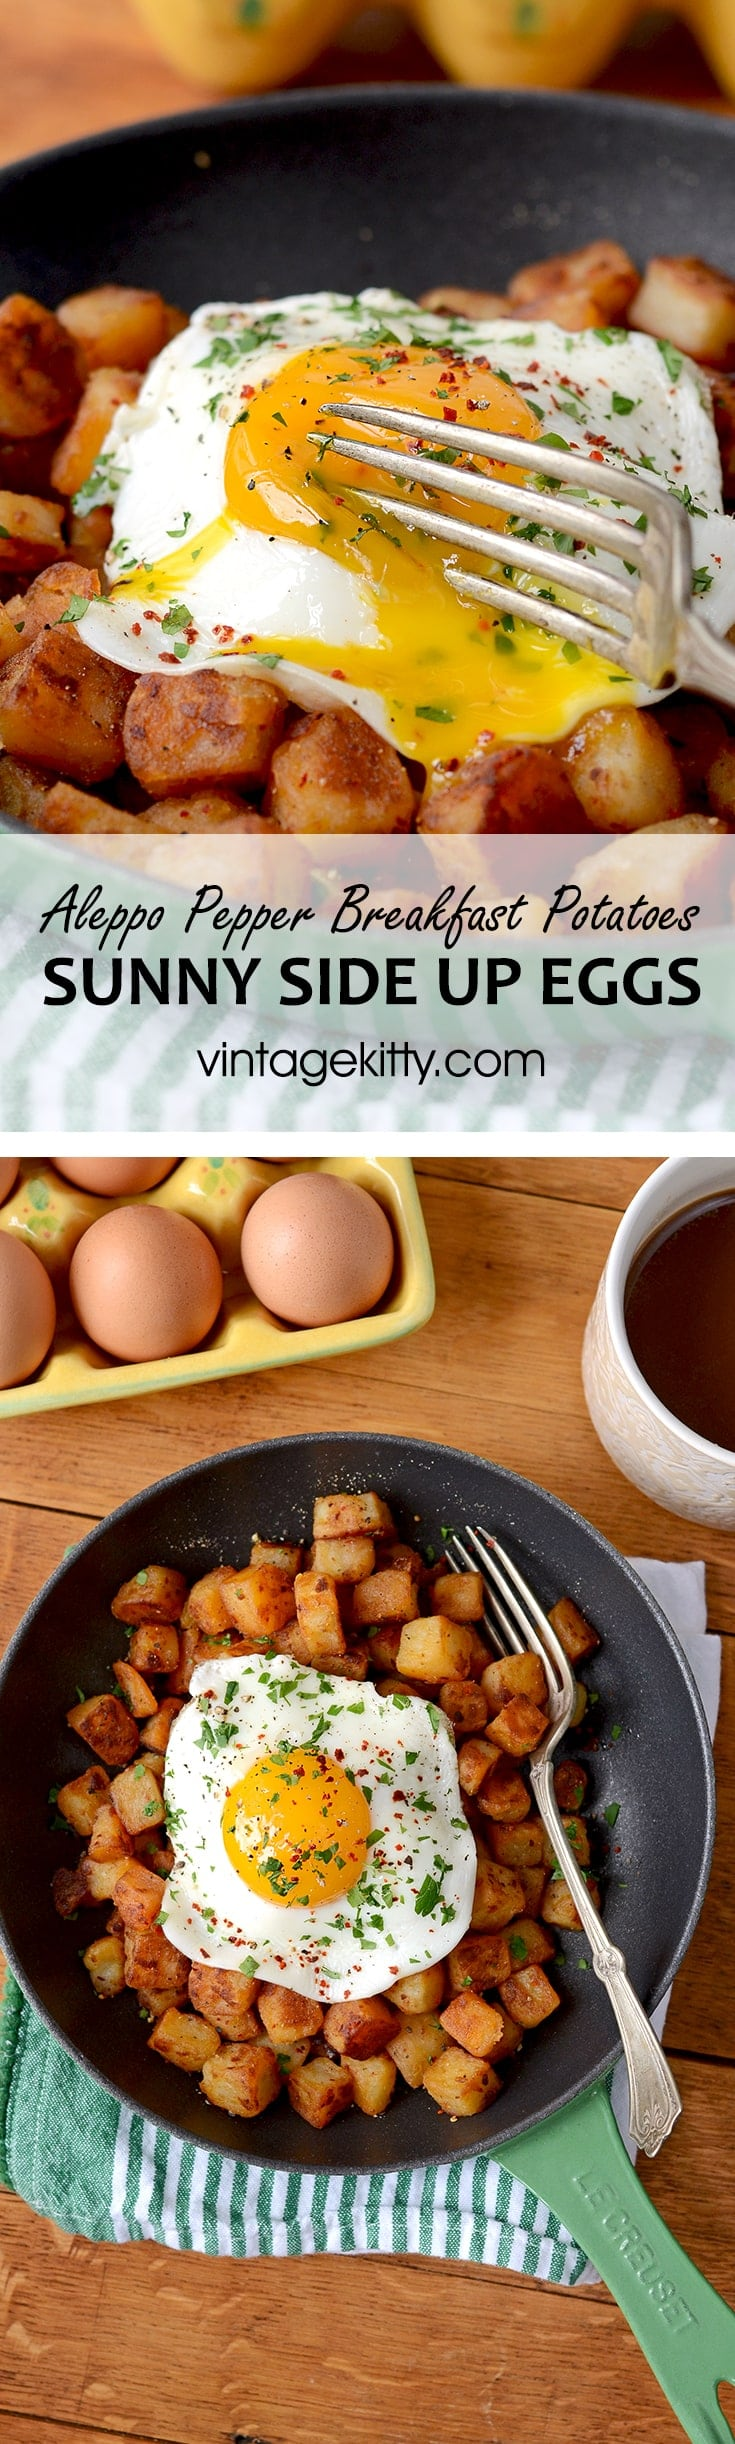 Aleppo Pepper Breakfast Potatoes Pin 2 - Crispy Aleppo Pepper Breakfast Potatoes with Sunny Side Up Eggs